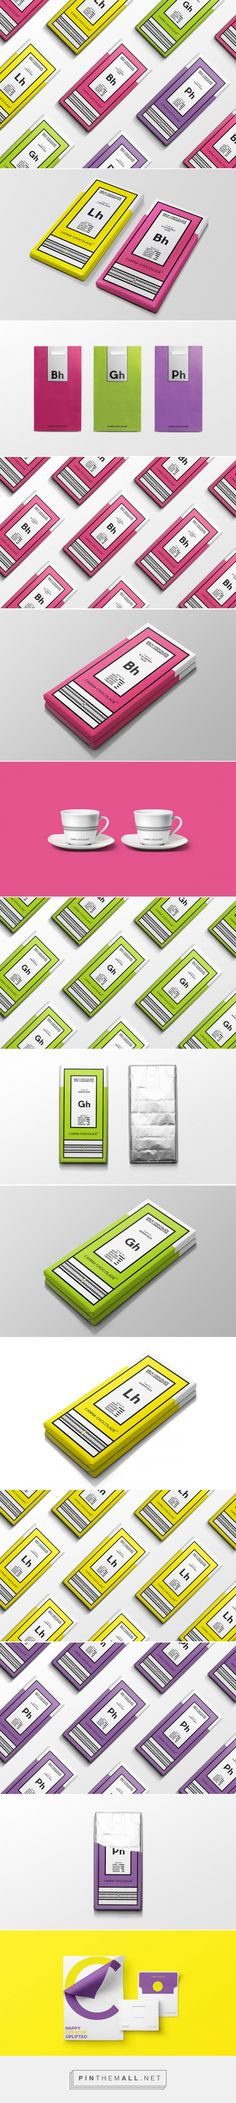 Canna Chocolade cannabis chocolate packaging concept designed by Corn Studio - http://www.packagingoftheworld.com/2015/10/canna-chocolade-concept.html